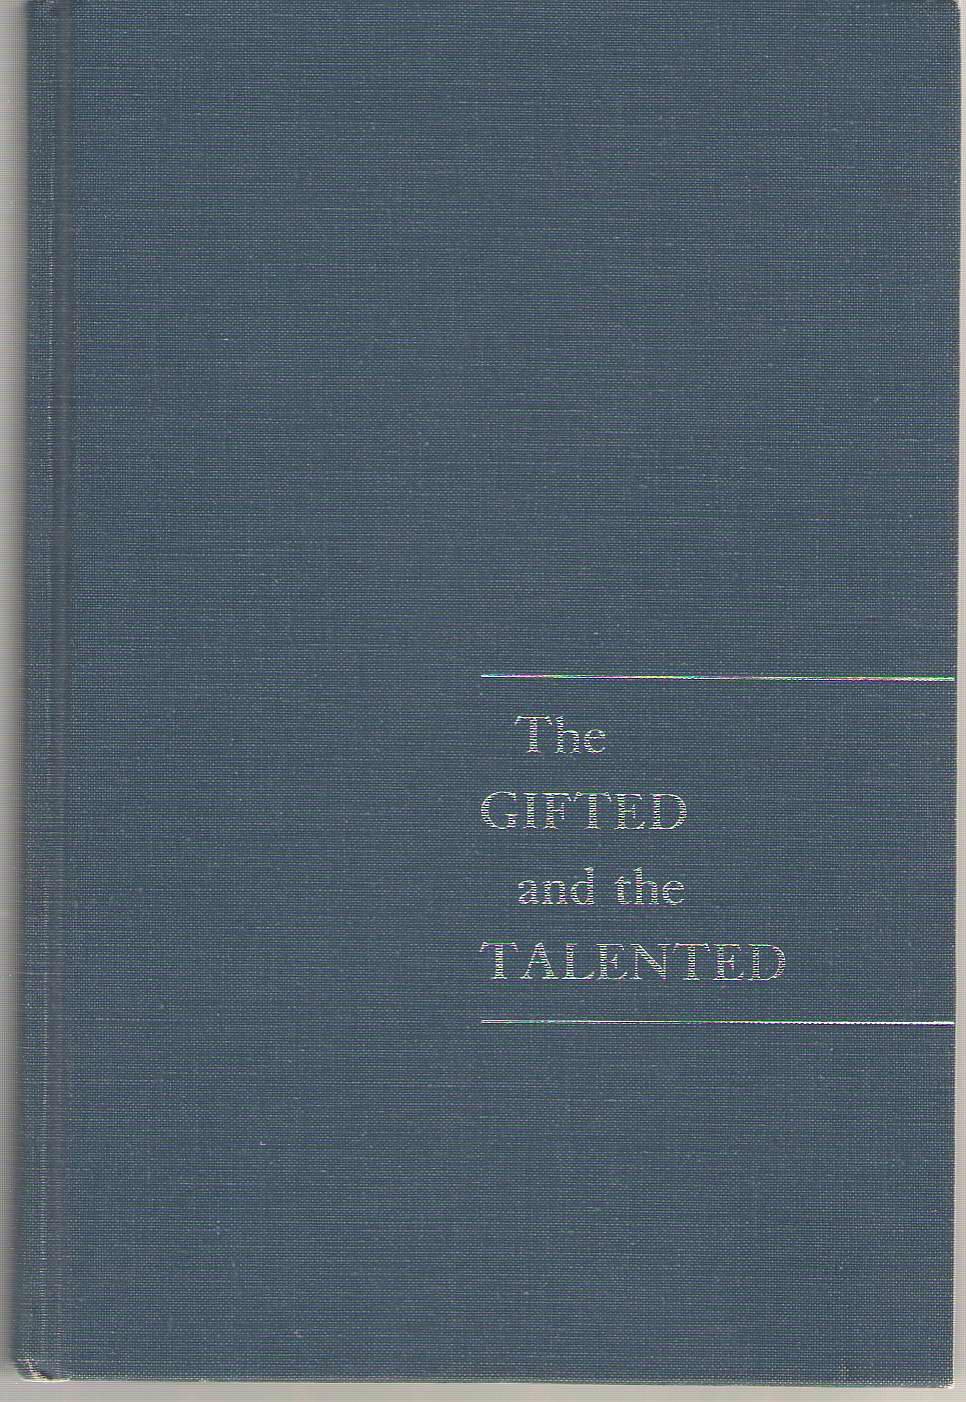 The Gifted And The Talented, Their Education And Development, Passow, A. Harry (editor)